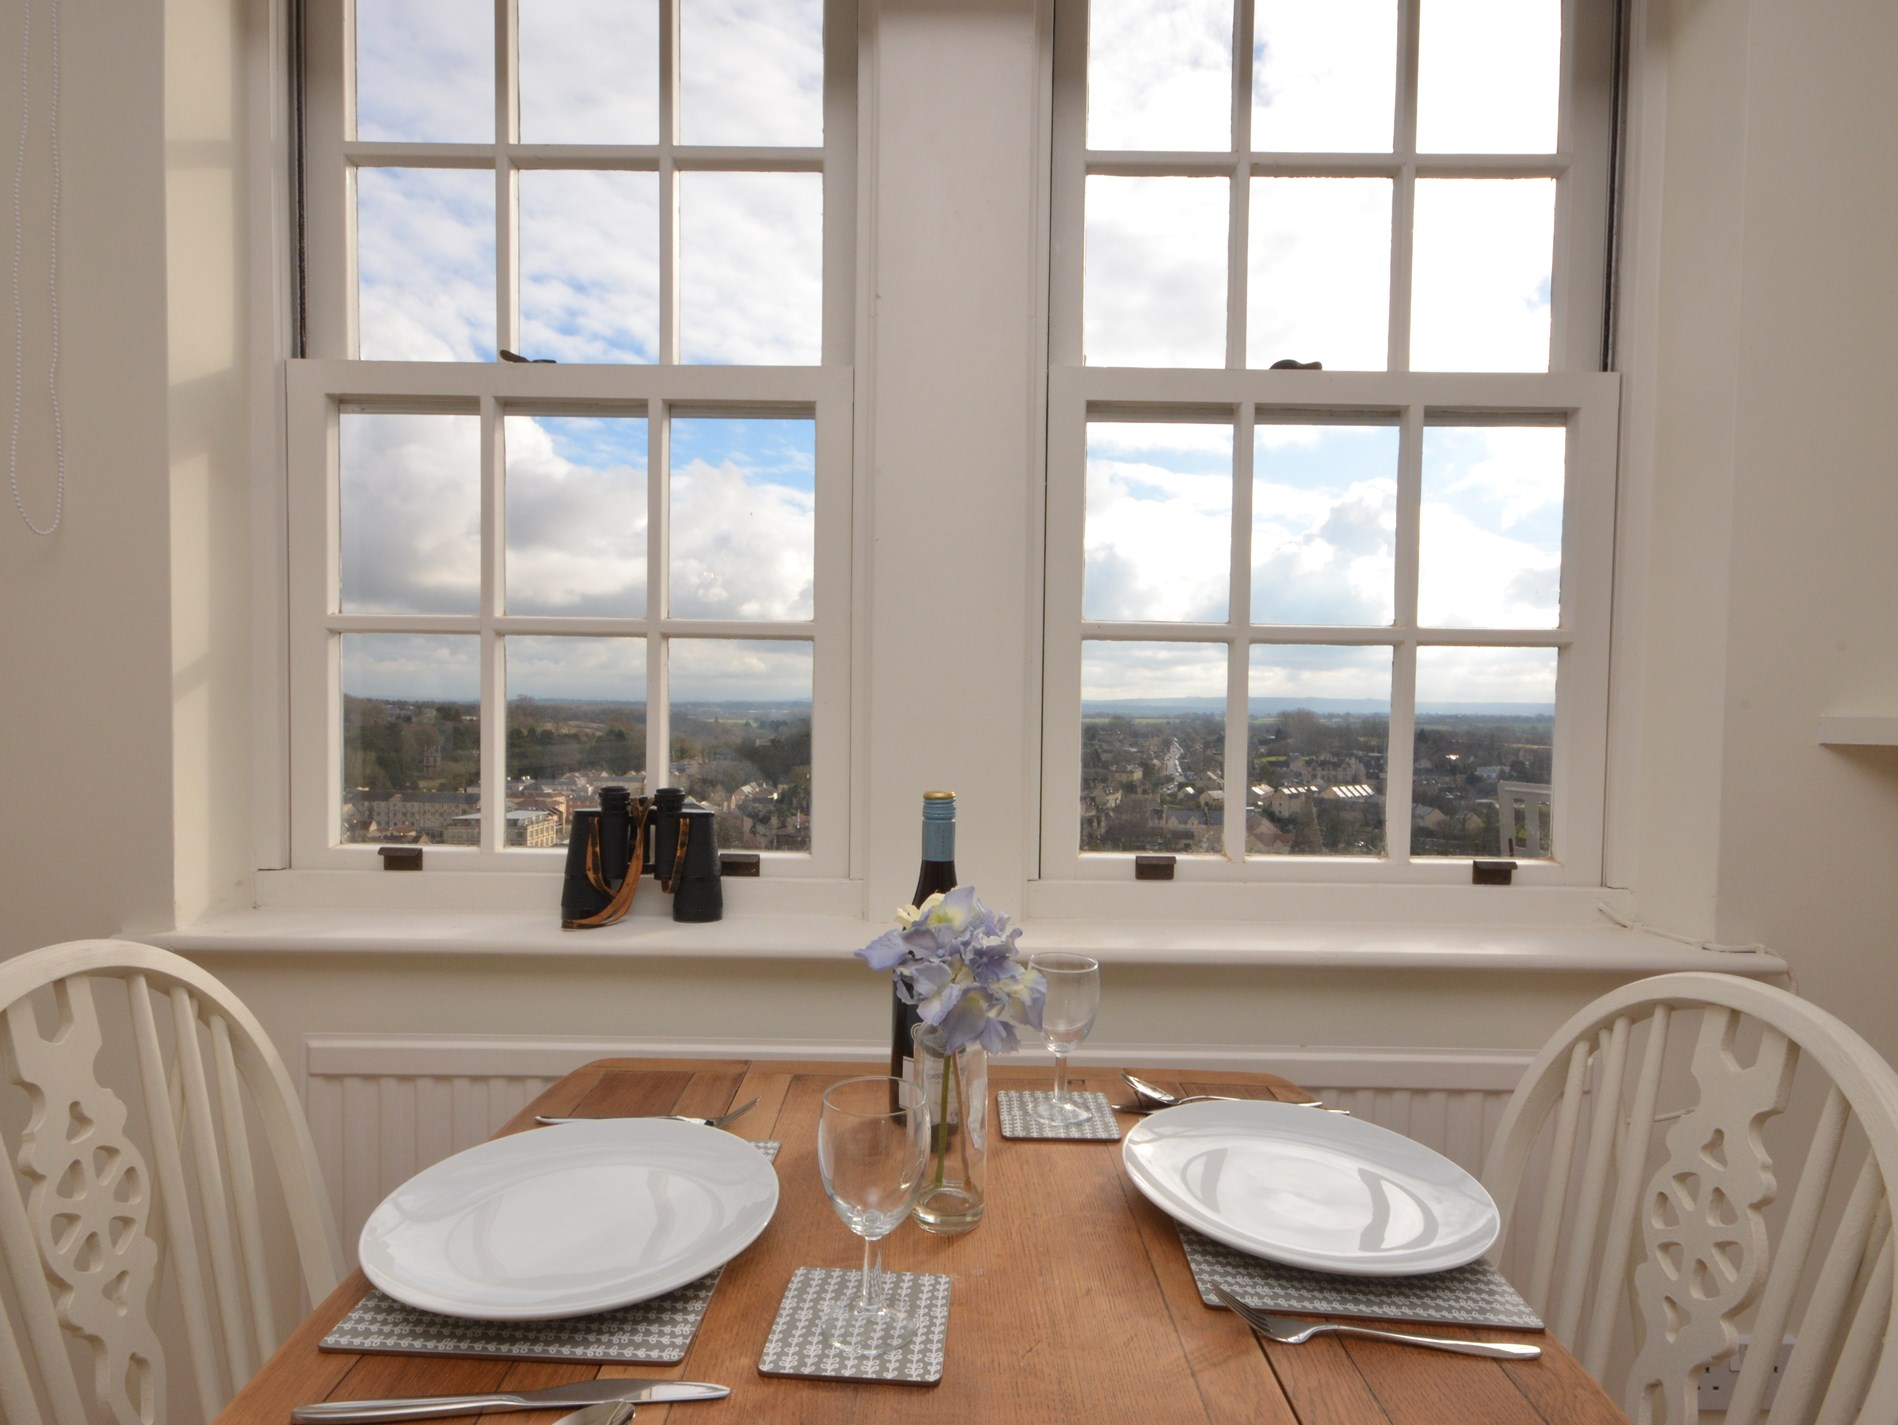 Dining area with exquisite views